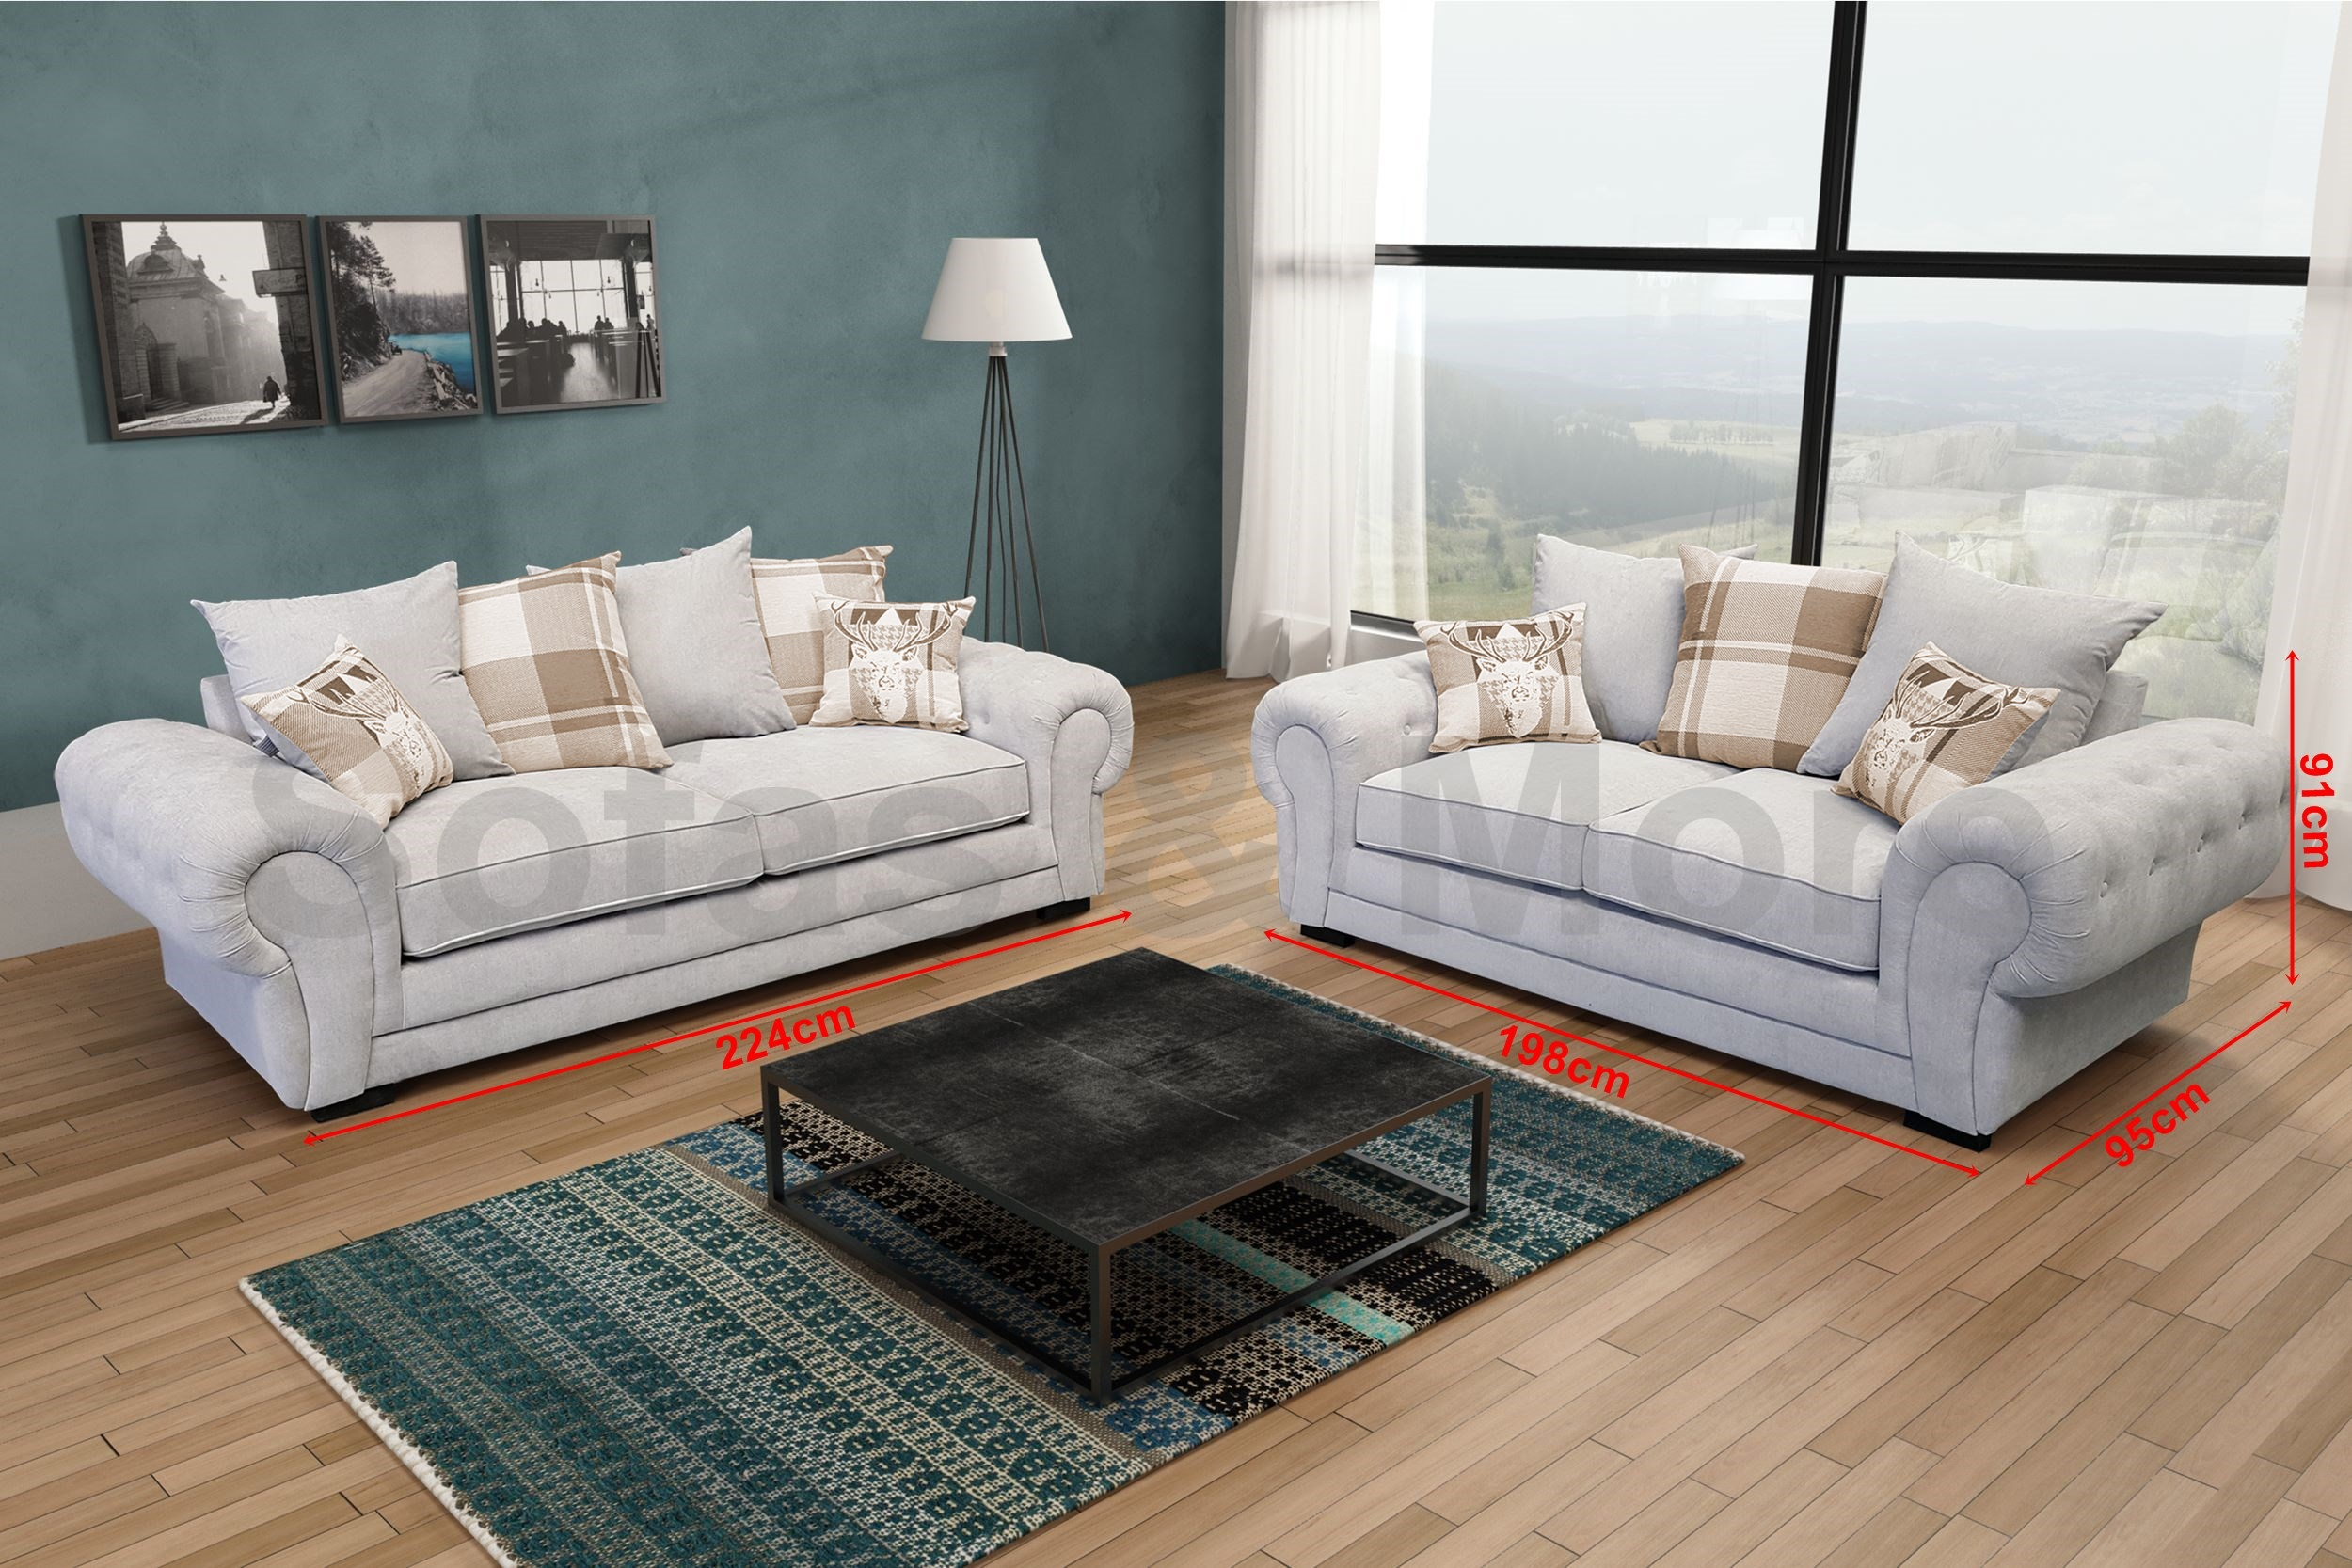 3 Seater 2 Seater Sofa Suite Set Fabric Velour Grey Brown